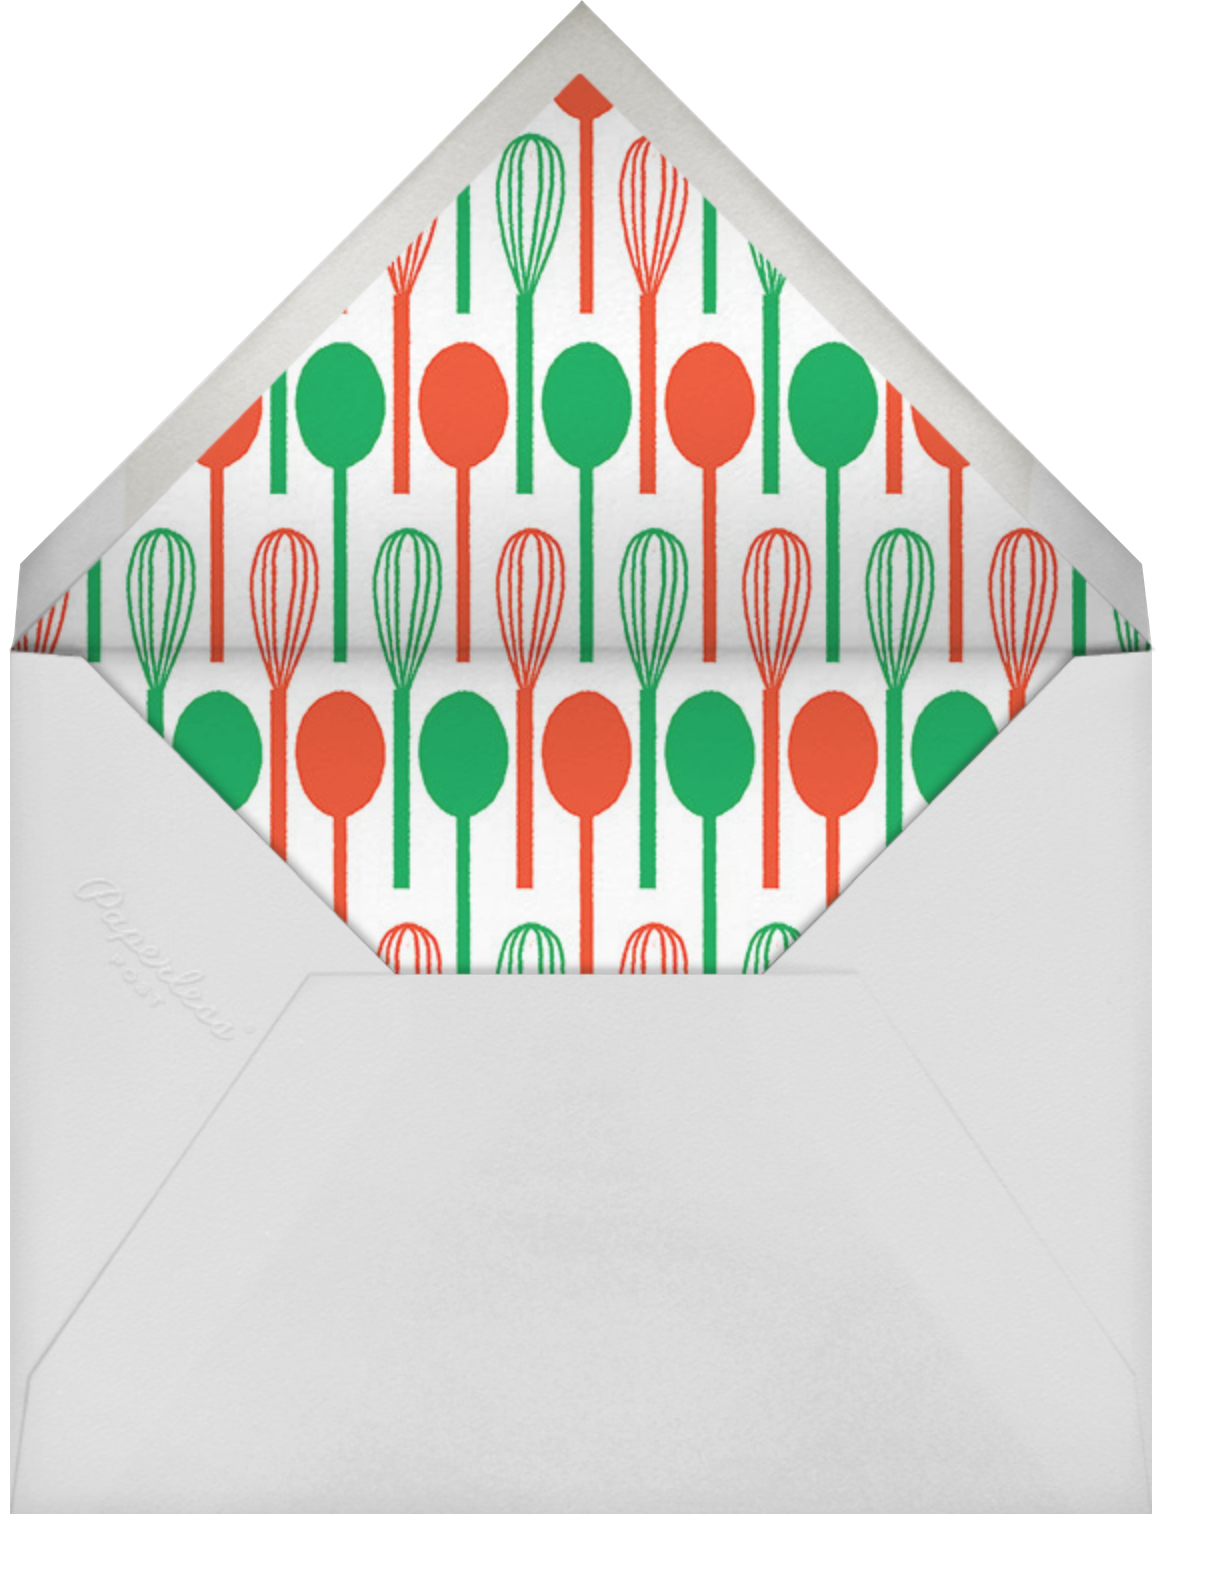 Apron Strings - Cream - Paperless Post - Taste Buds Kitchen - Adults - envelope back